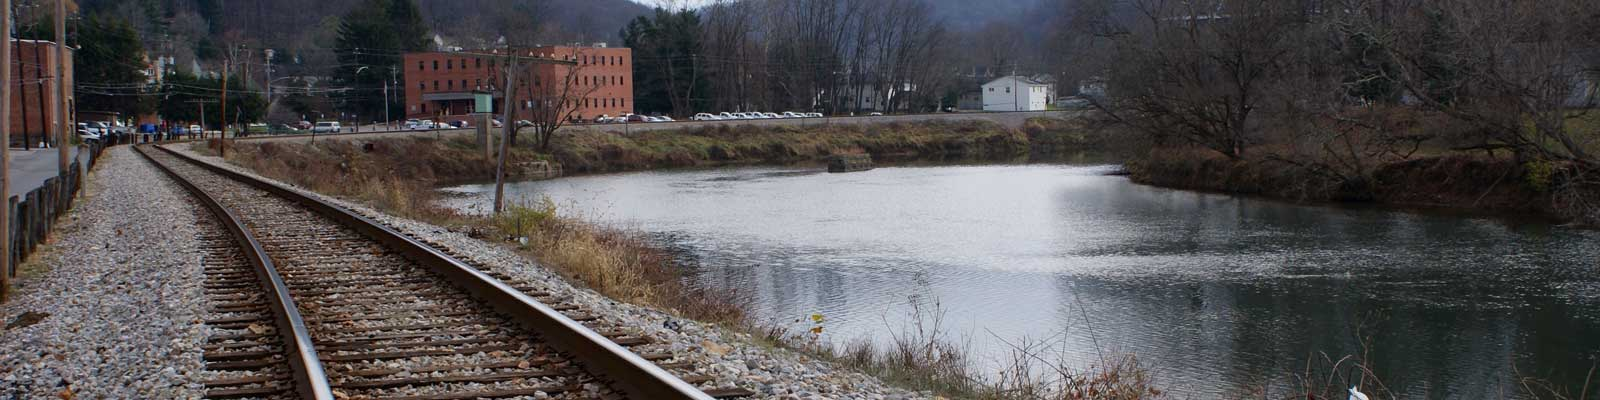 This is an image of railroad tracks in Charleston West Virginia where ASTA-USA provides professional translation services.